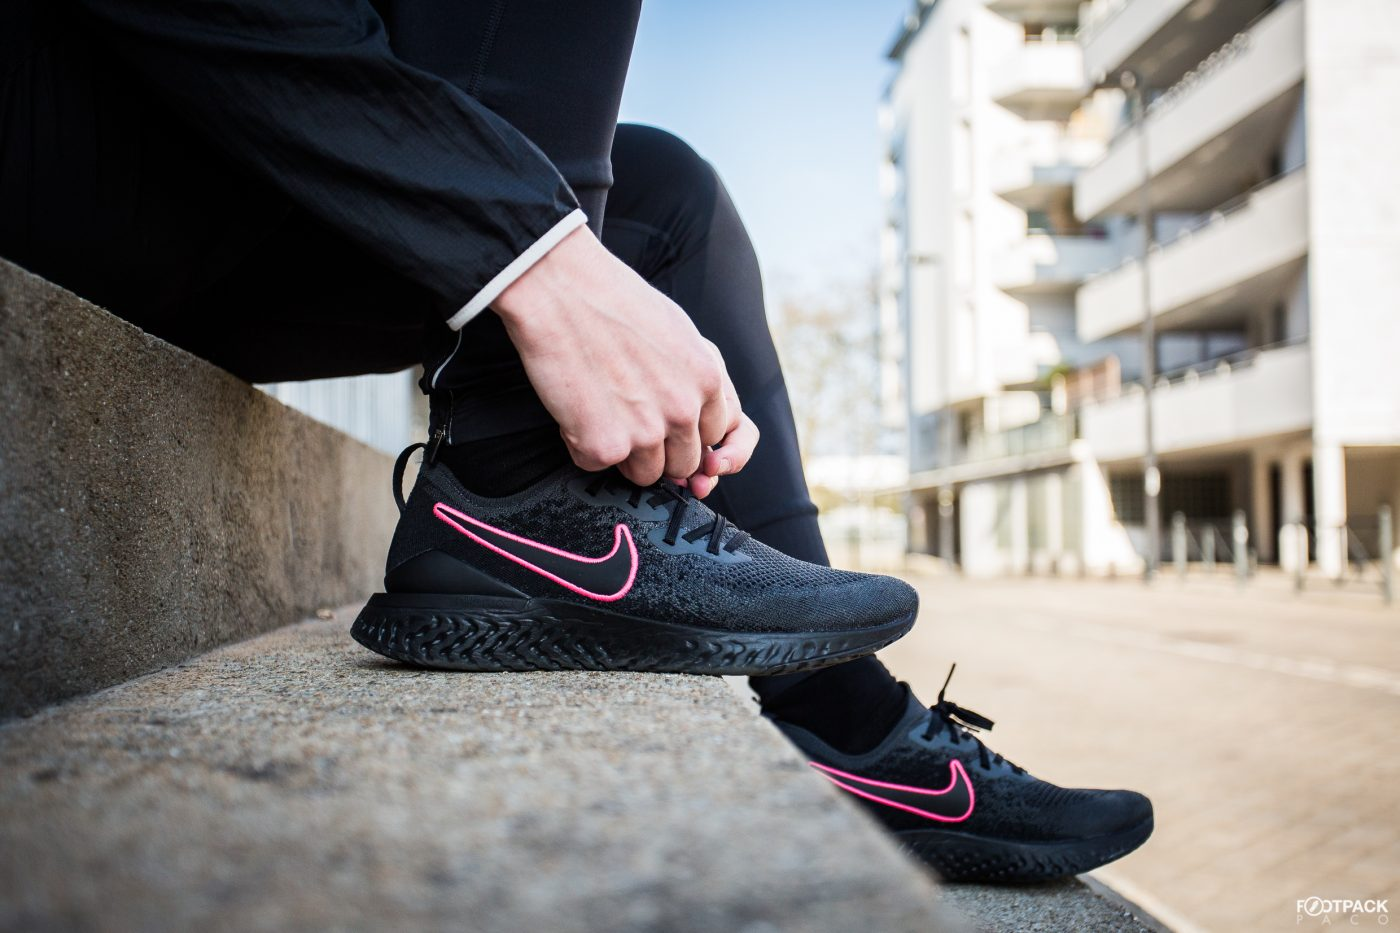 nike-epic-react-flyknit-paris-saint-germain-4